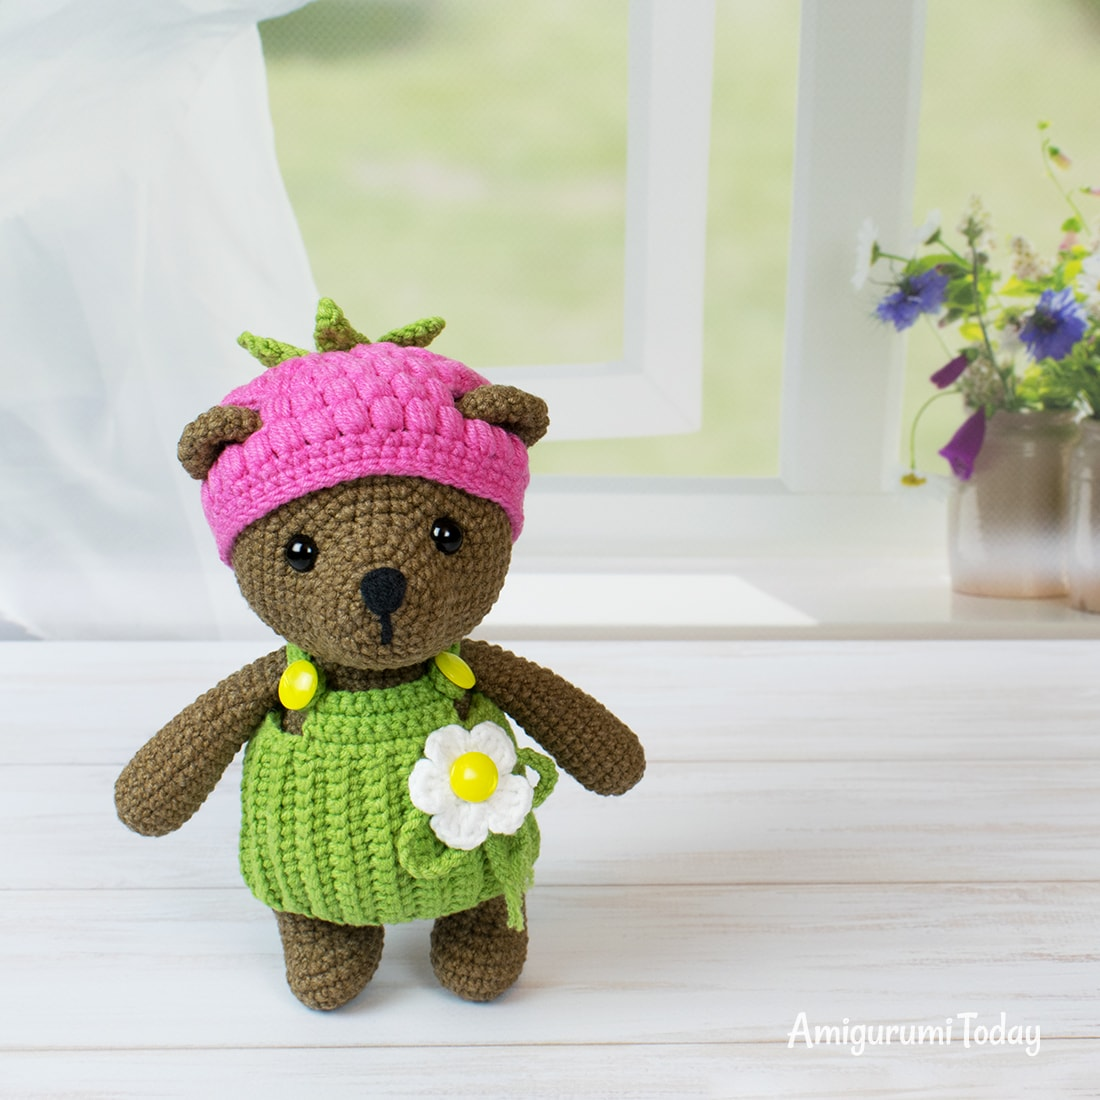 Raspberry Bear crochet pattern by Amigurumi Today